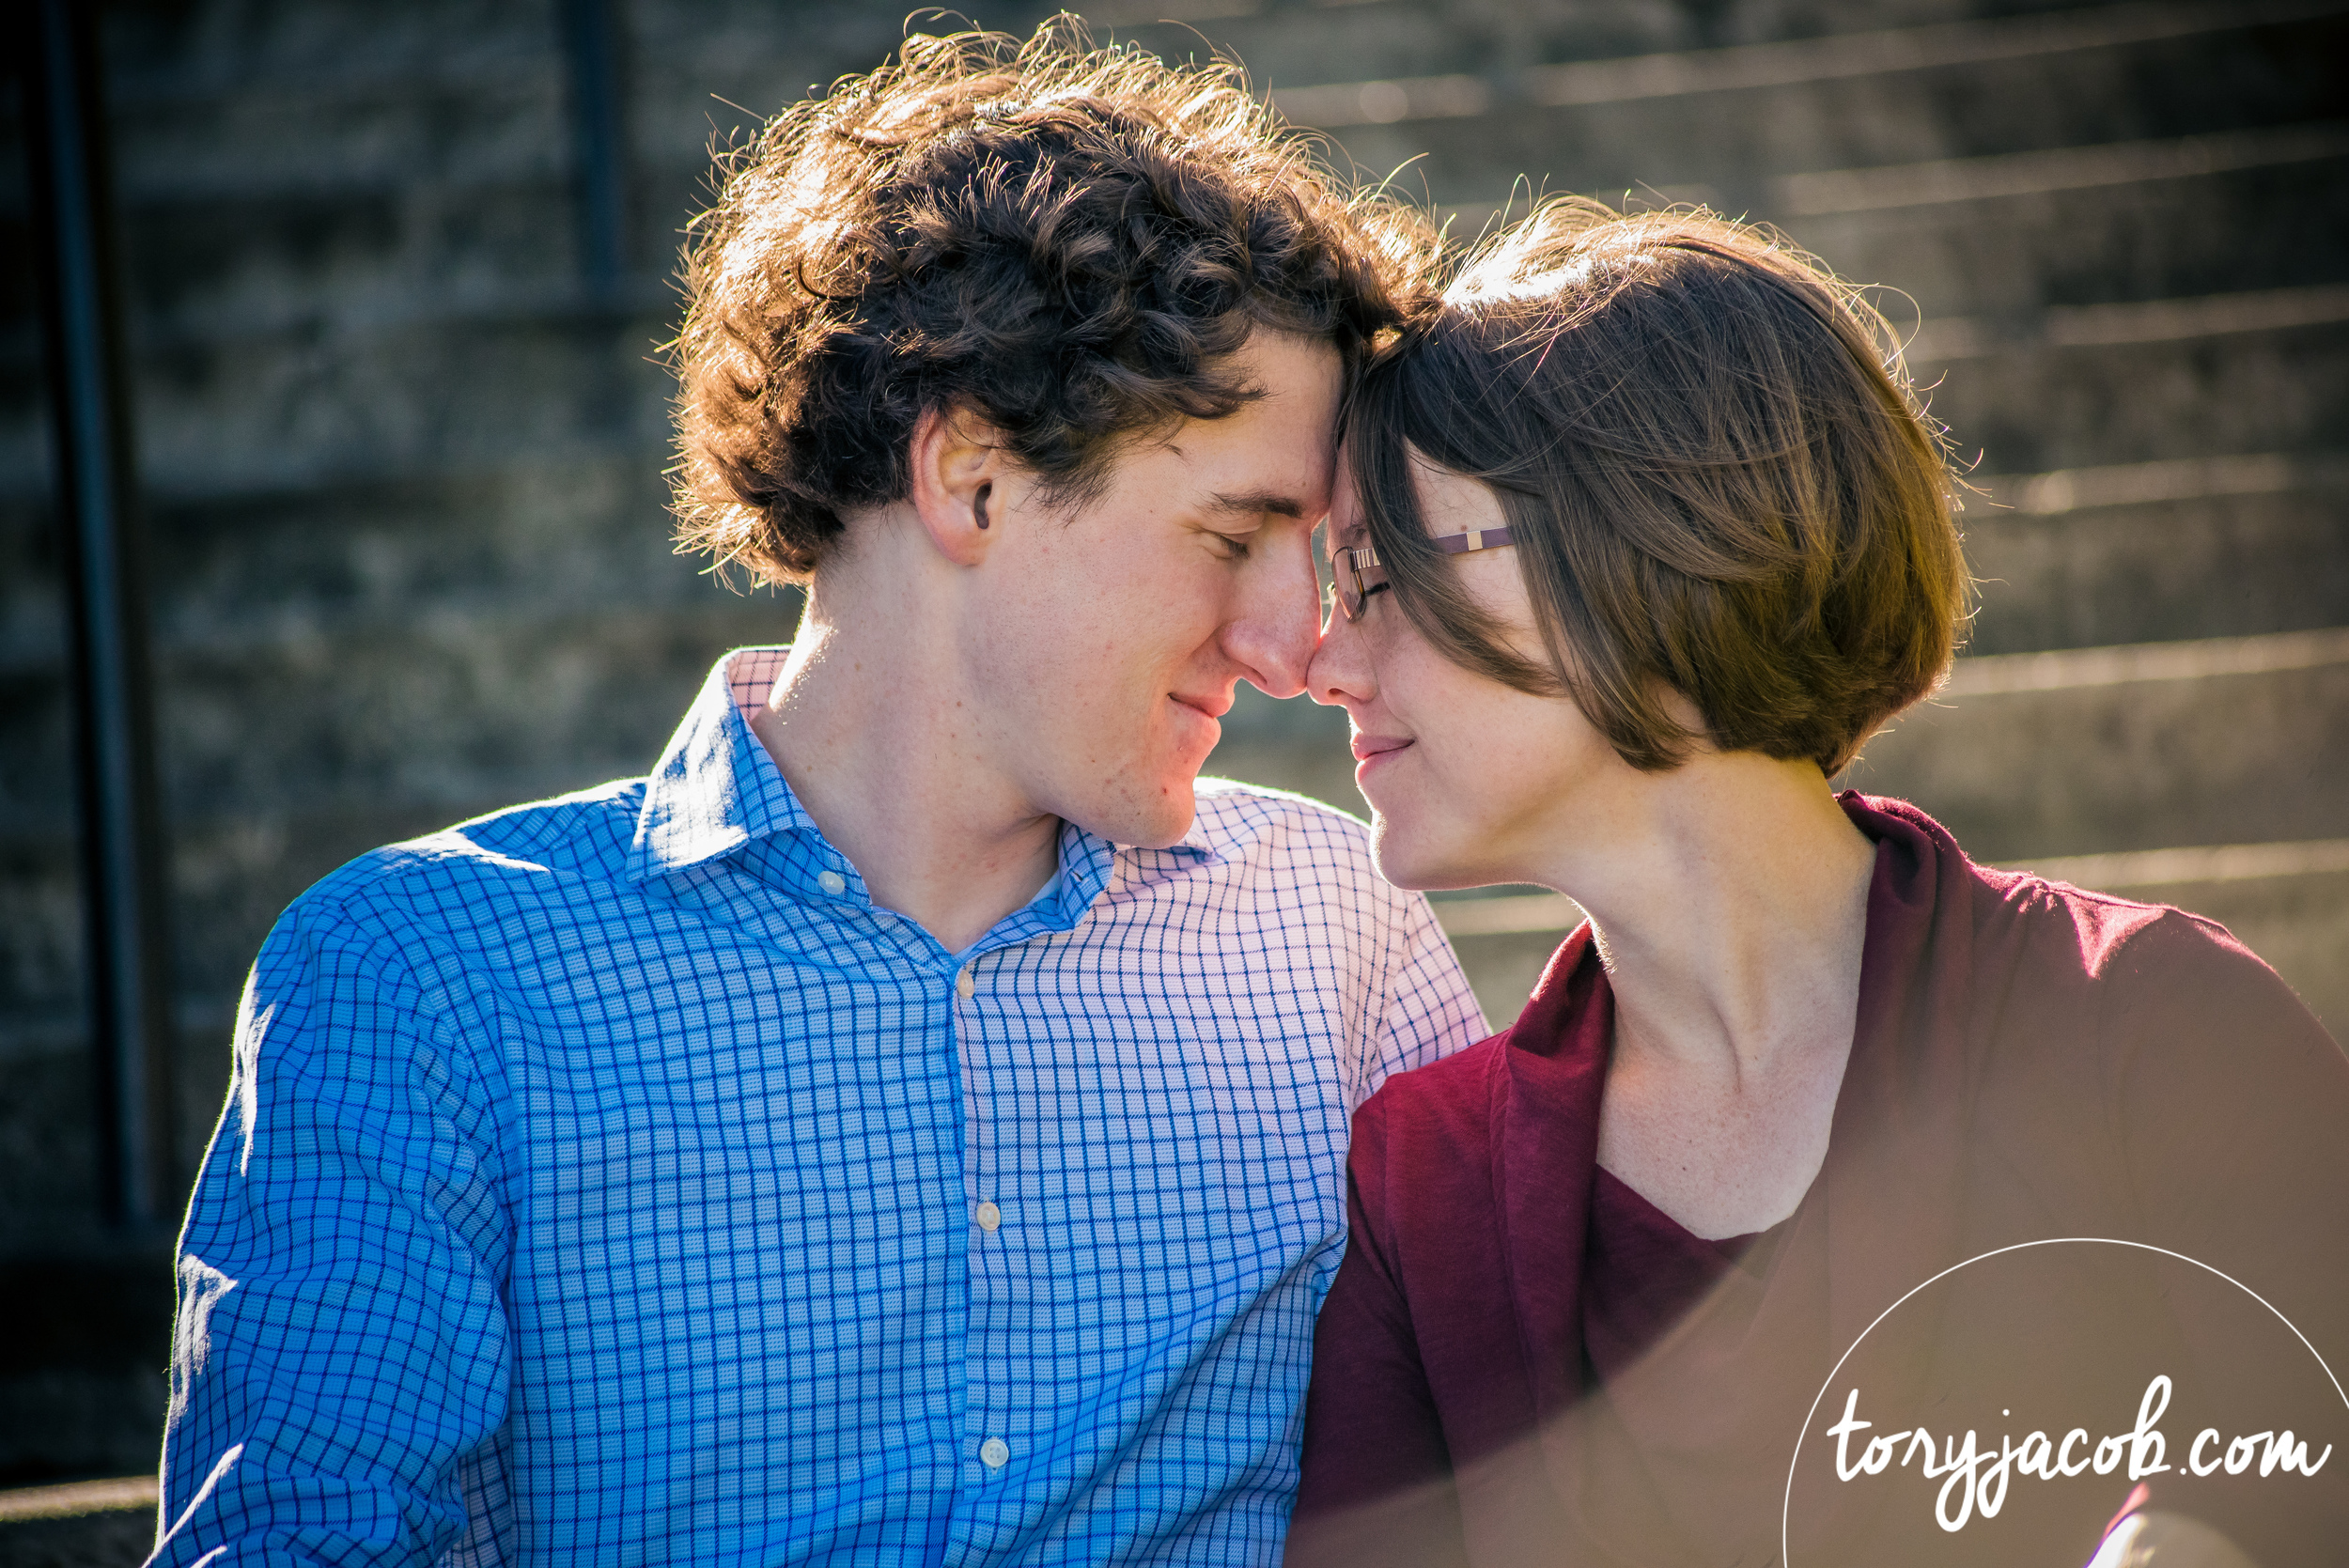 andy+elana_Sneak Peek-1-2.JPG